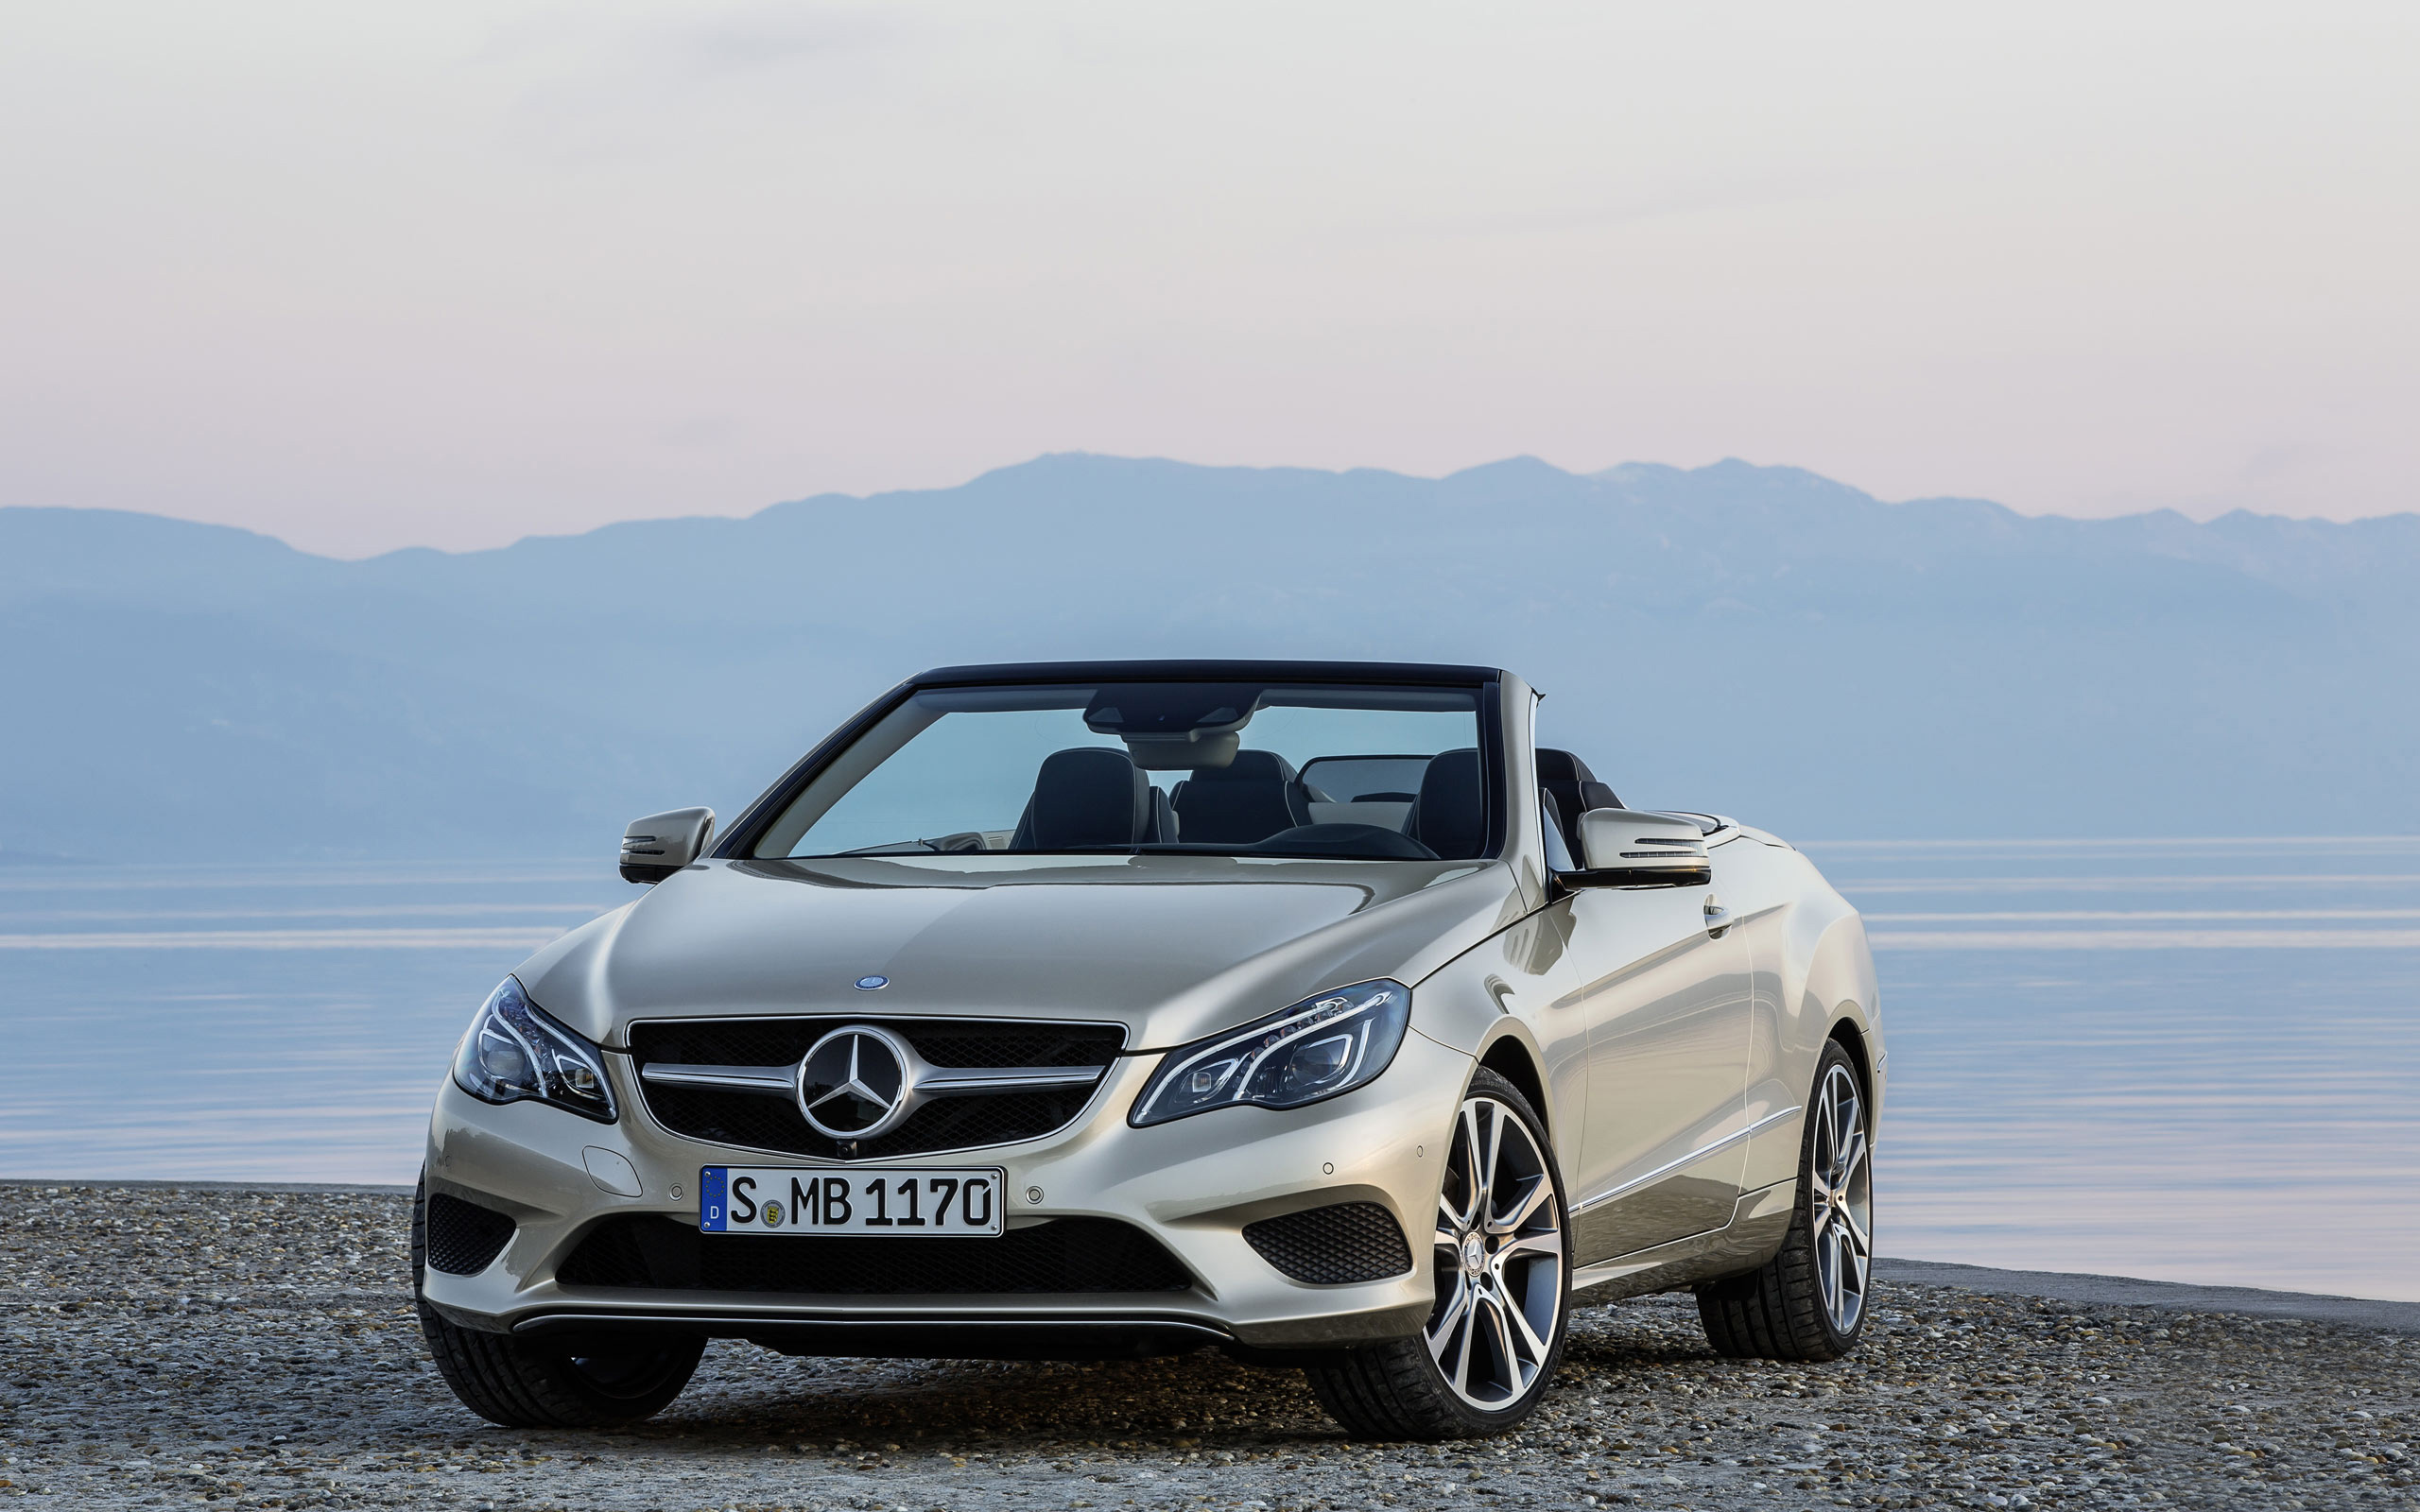 2014 mercedes benz e class cabriolet wallpaper hd car for 2014 e class mercedes benz